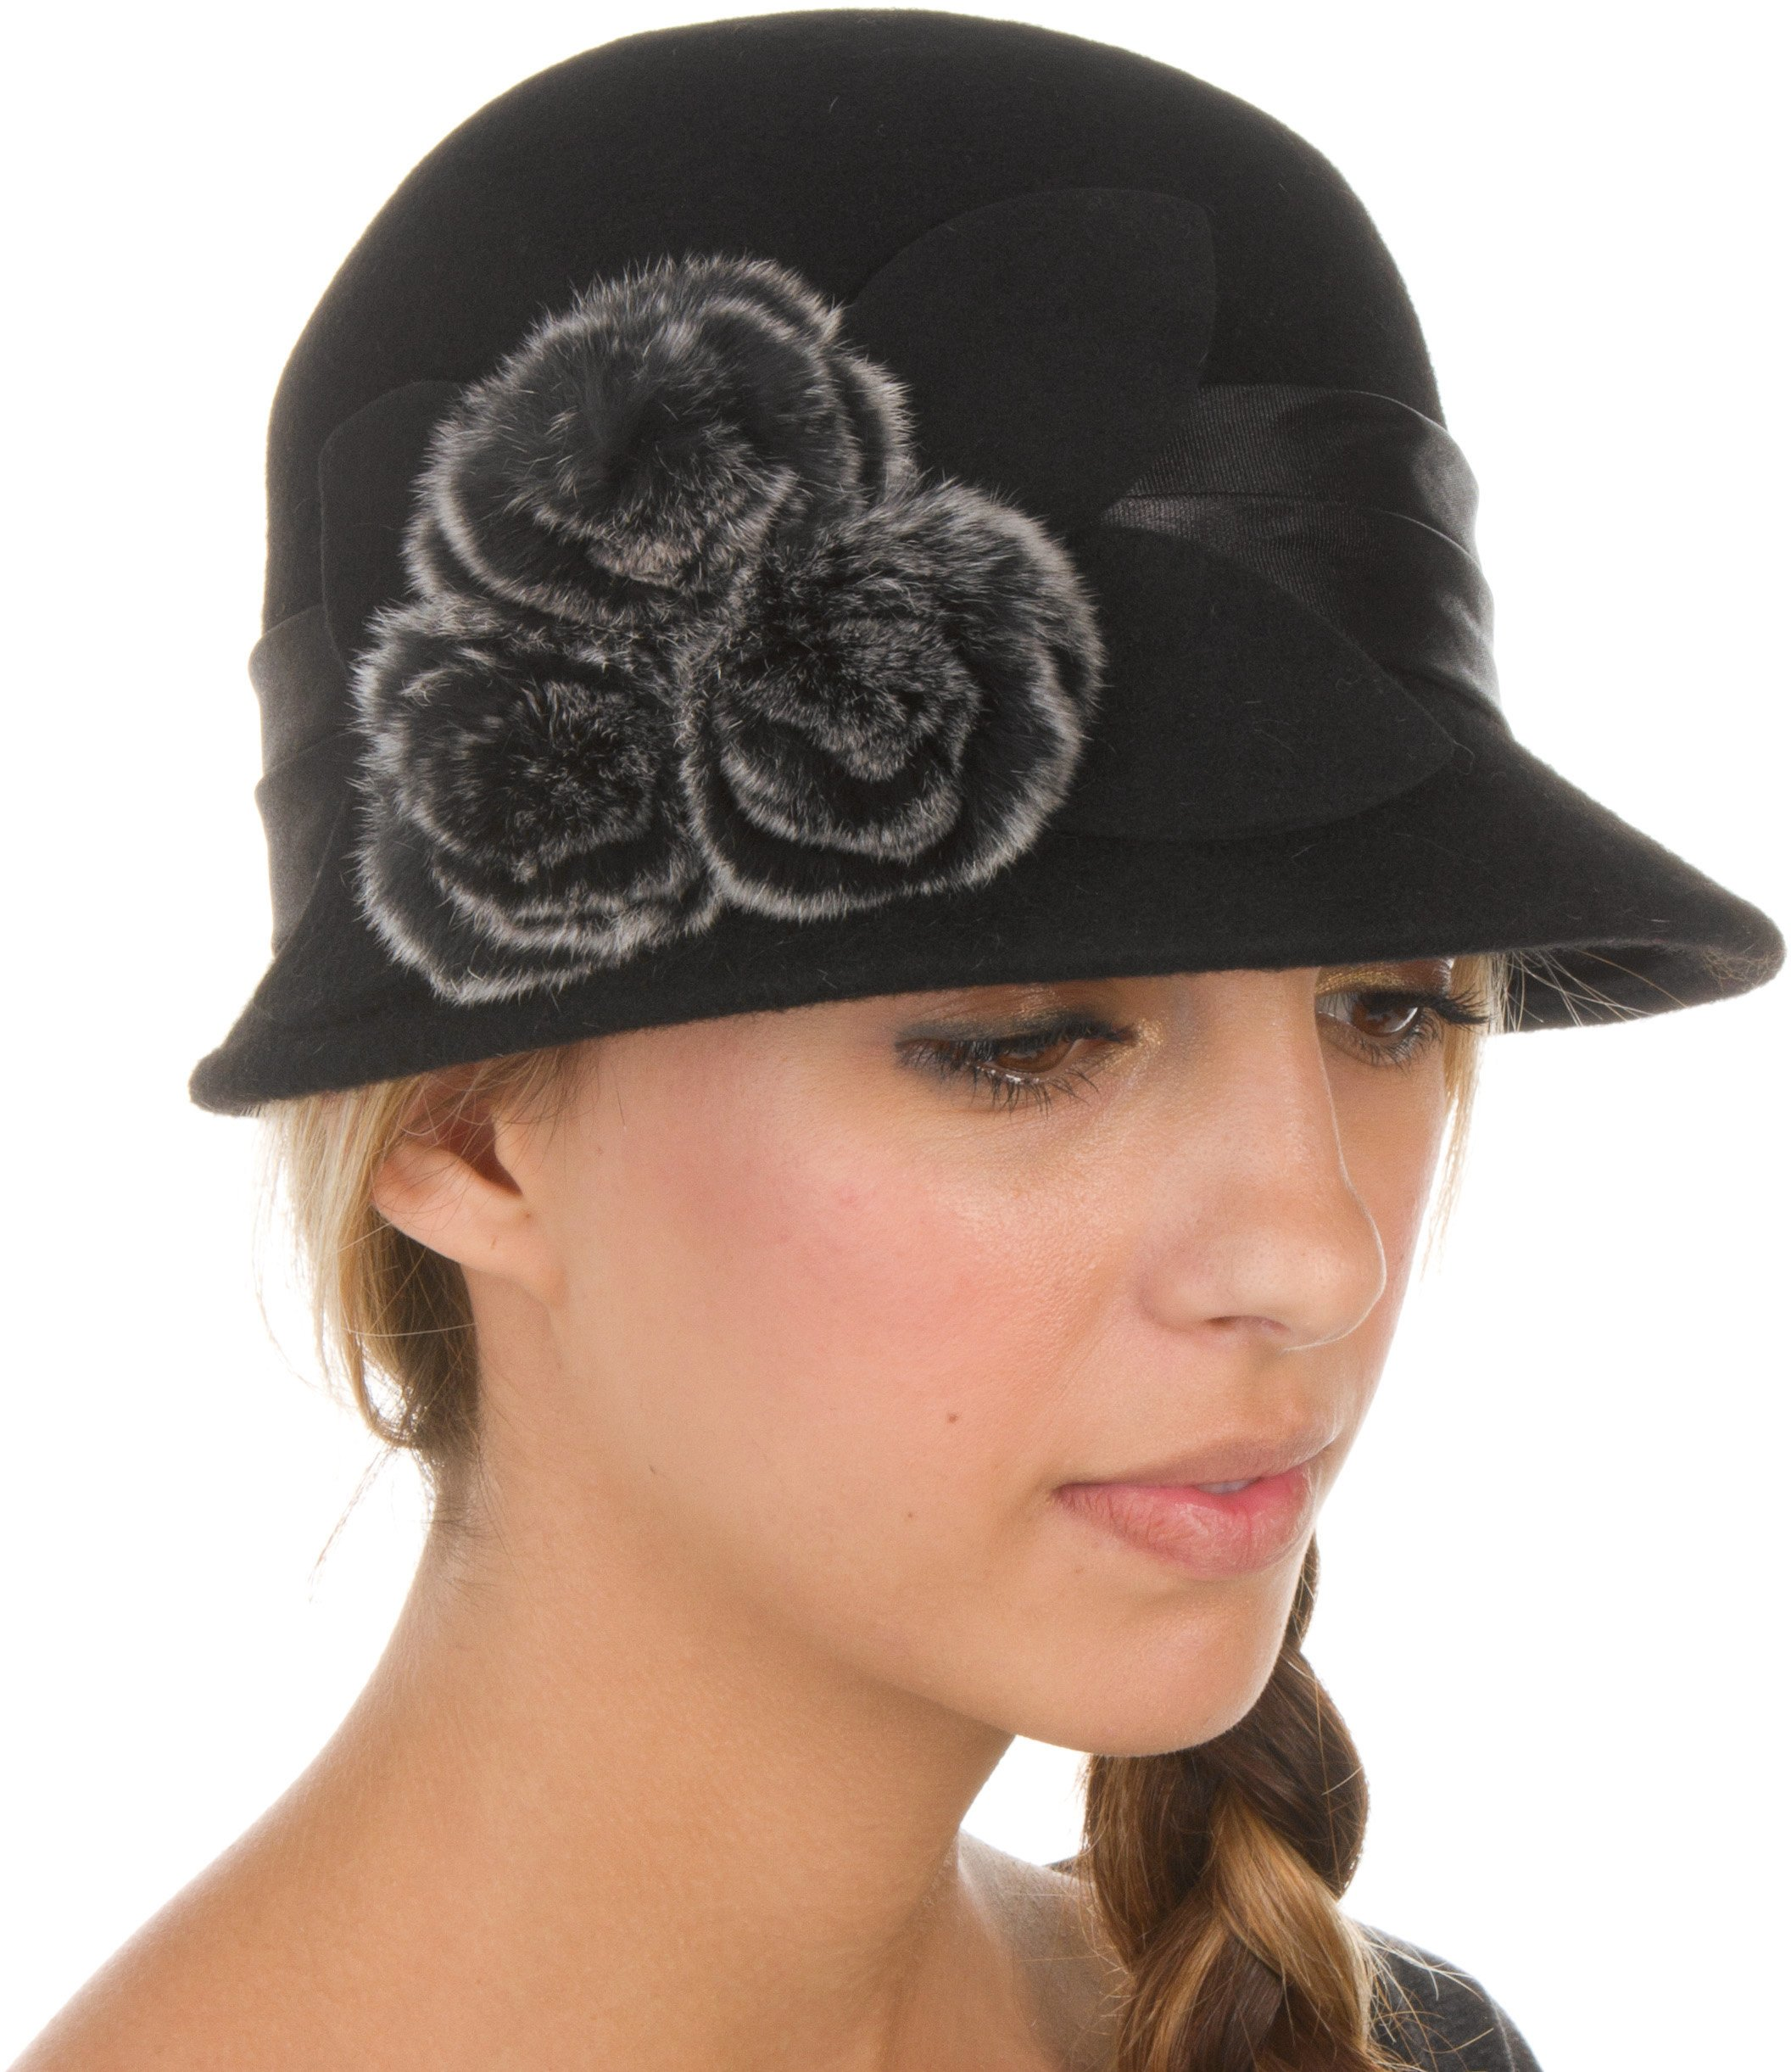 Sakkas 7841LC Sadie Faux Fur Vintage Style Wool Cloche Bucket Bell Hat - Black - One Size